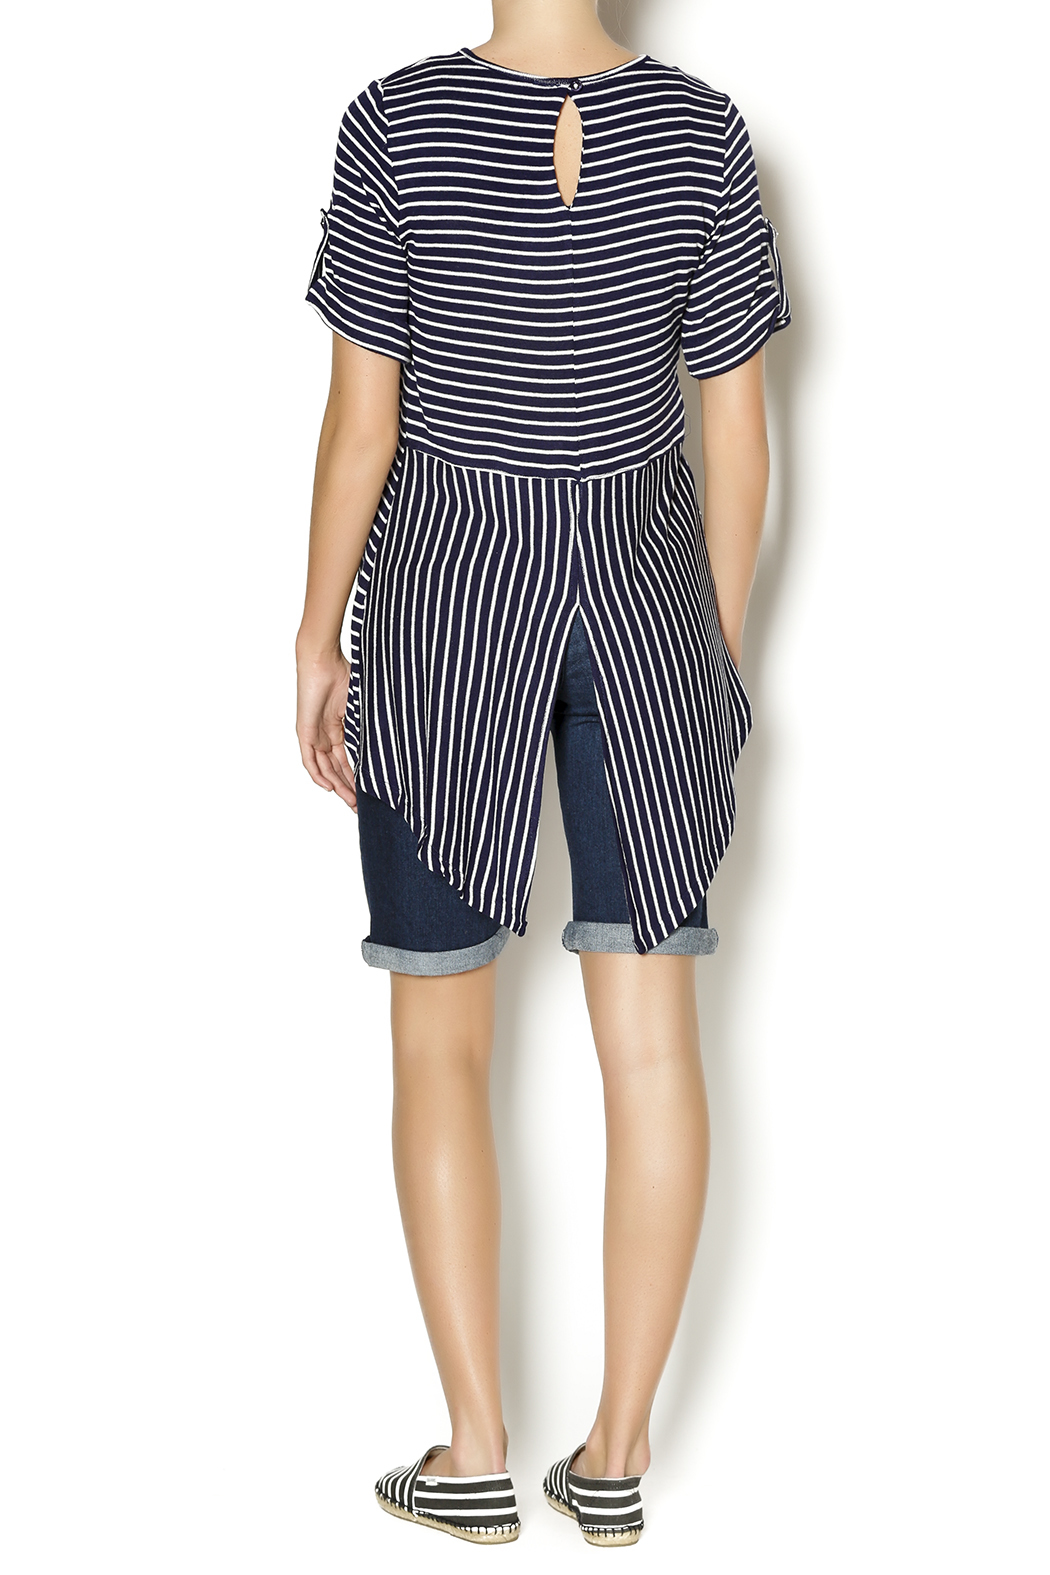 Mesmerize Striped High Low Top - Side Cropped Image